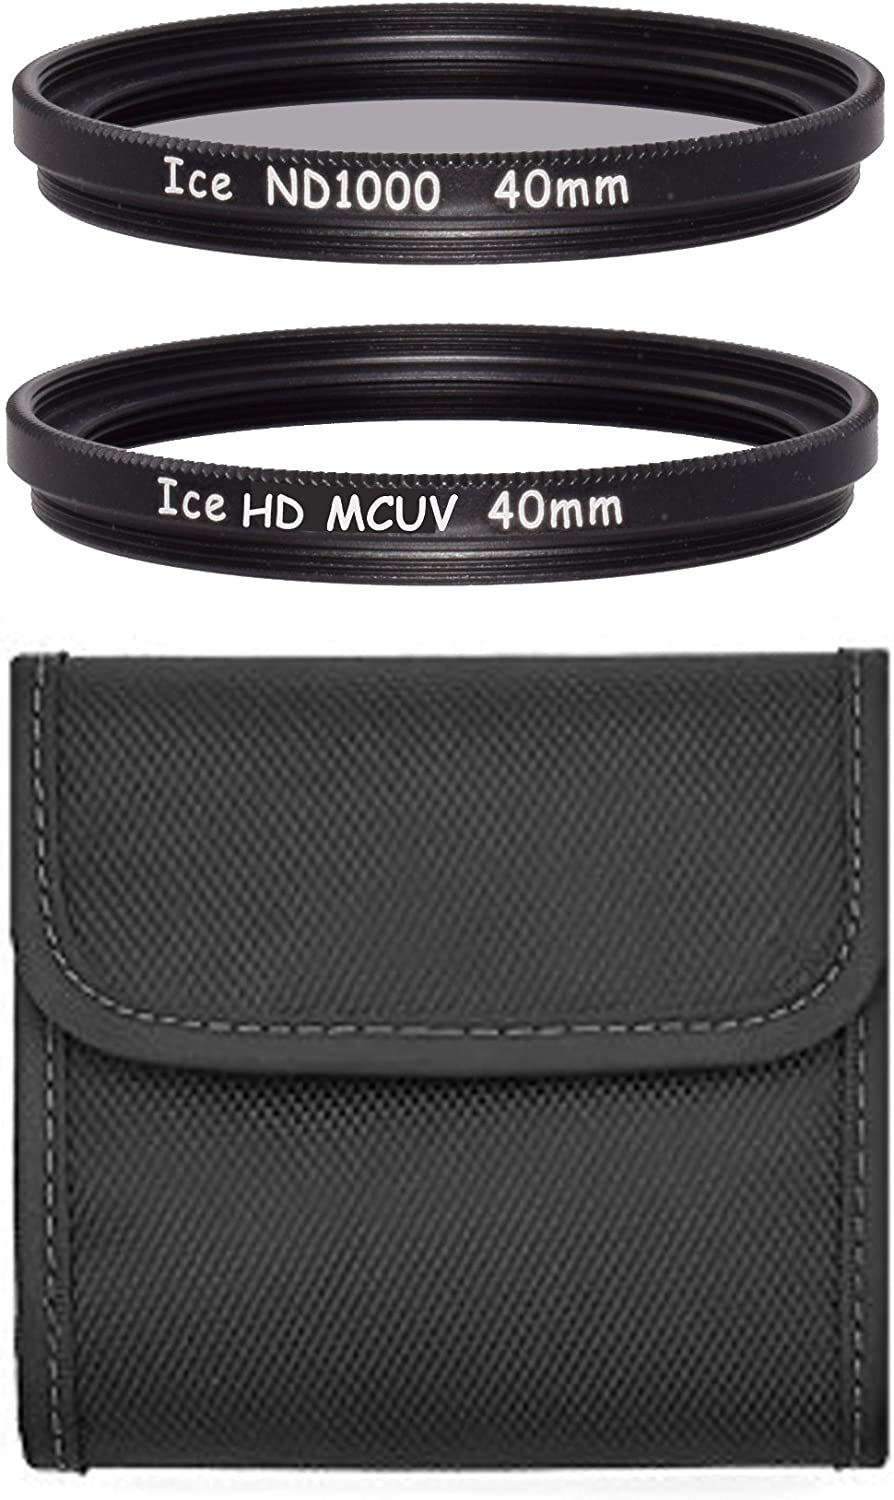 ICE 40mm Filter Set ND1000 /& UV Neutral Density ND 1000 40 10 Stop Optical Glass fits Fuji X10 X20 X30 X40 inc Wallet